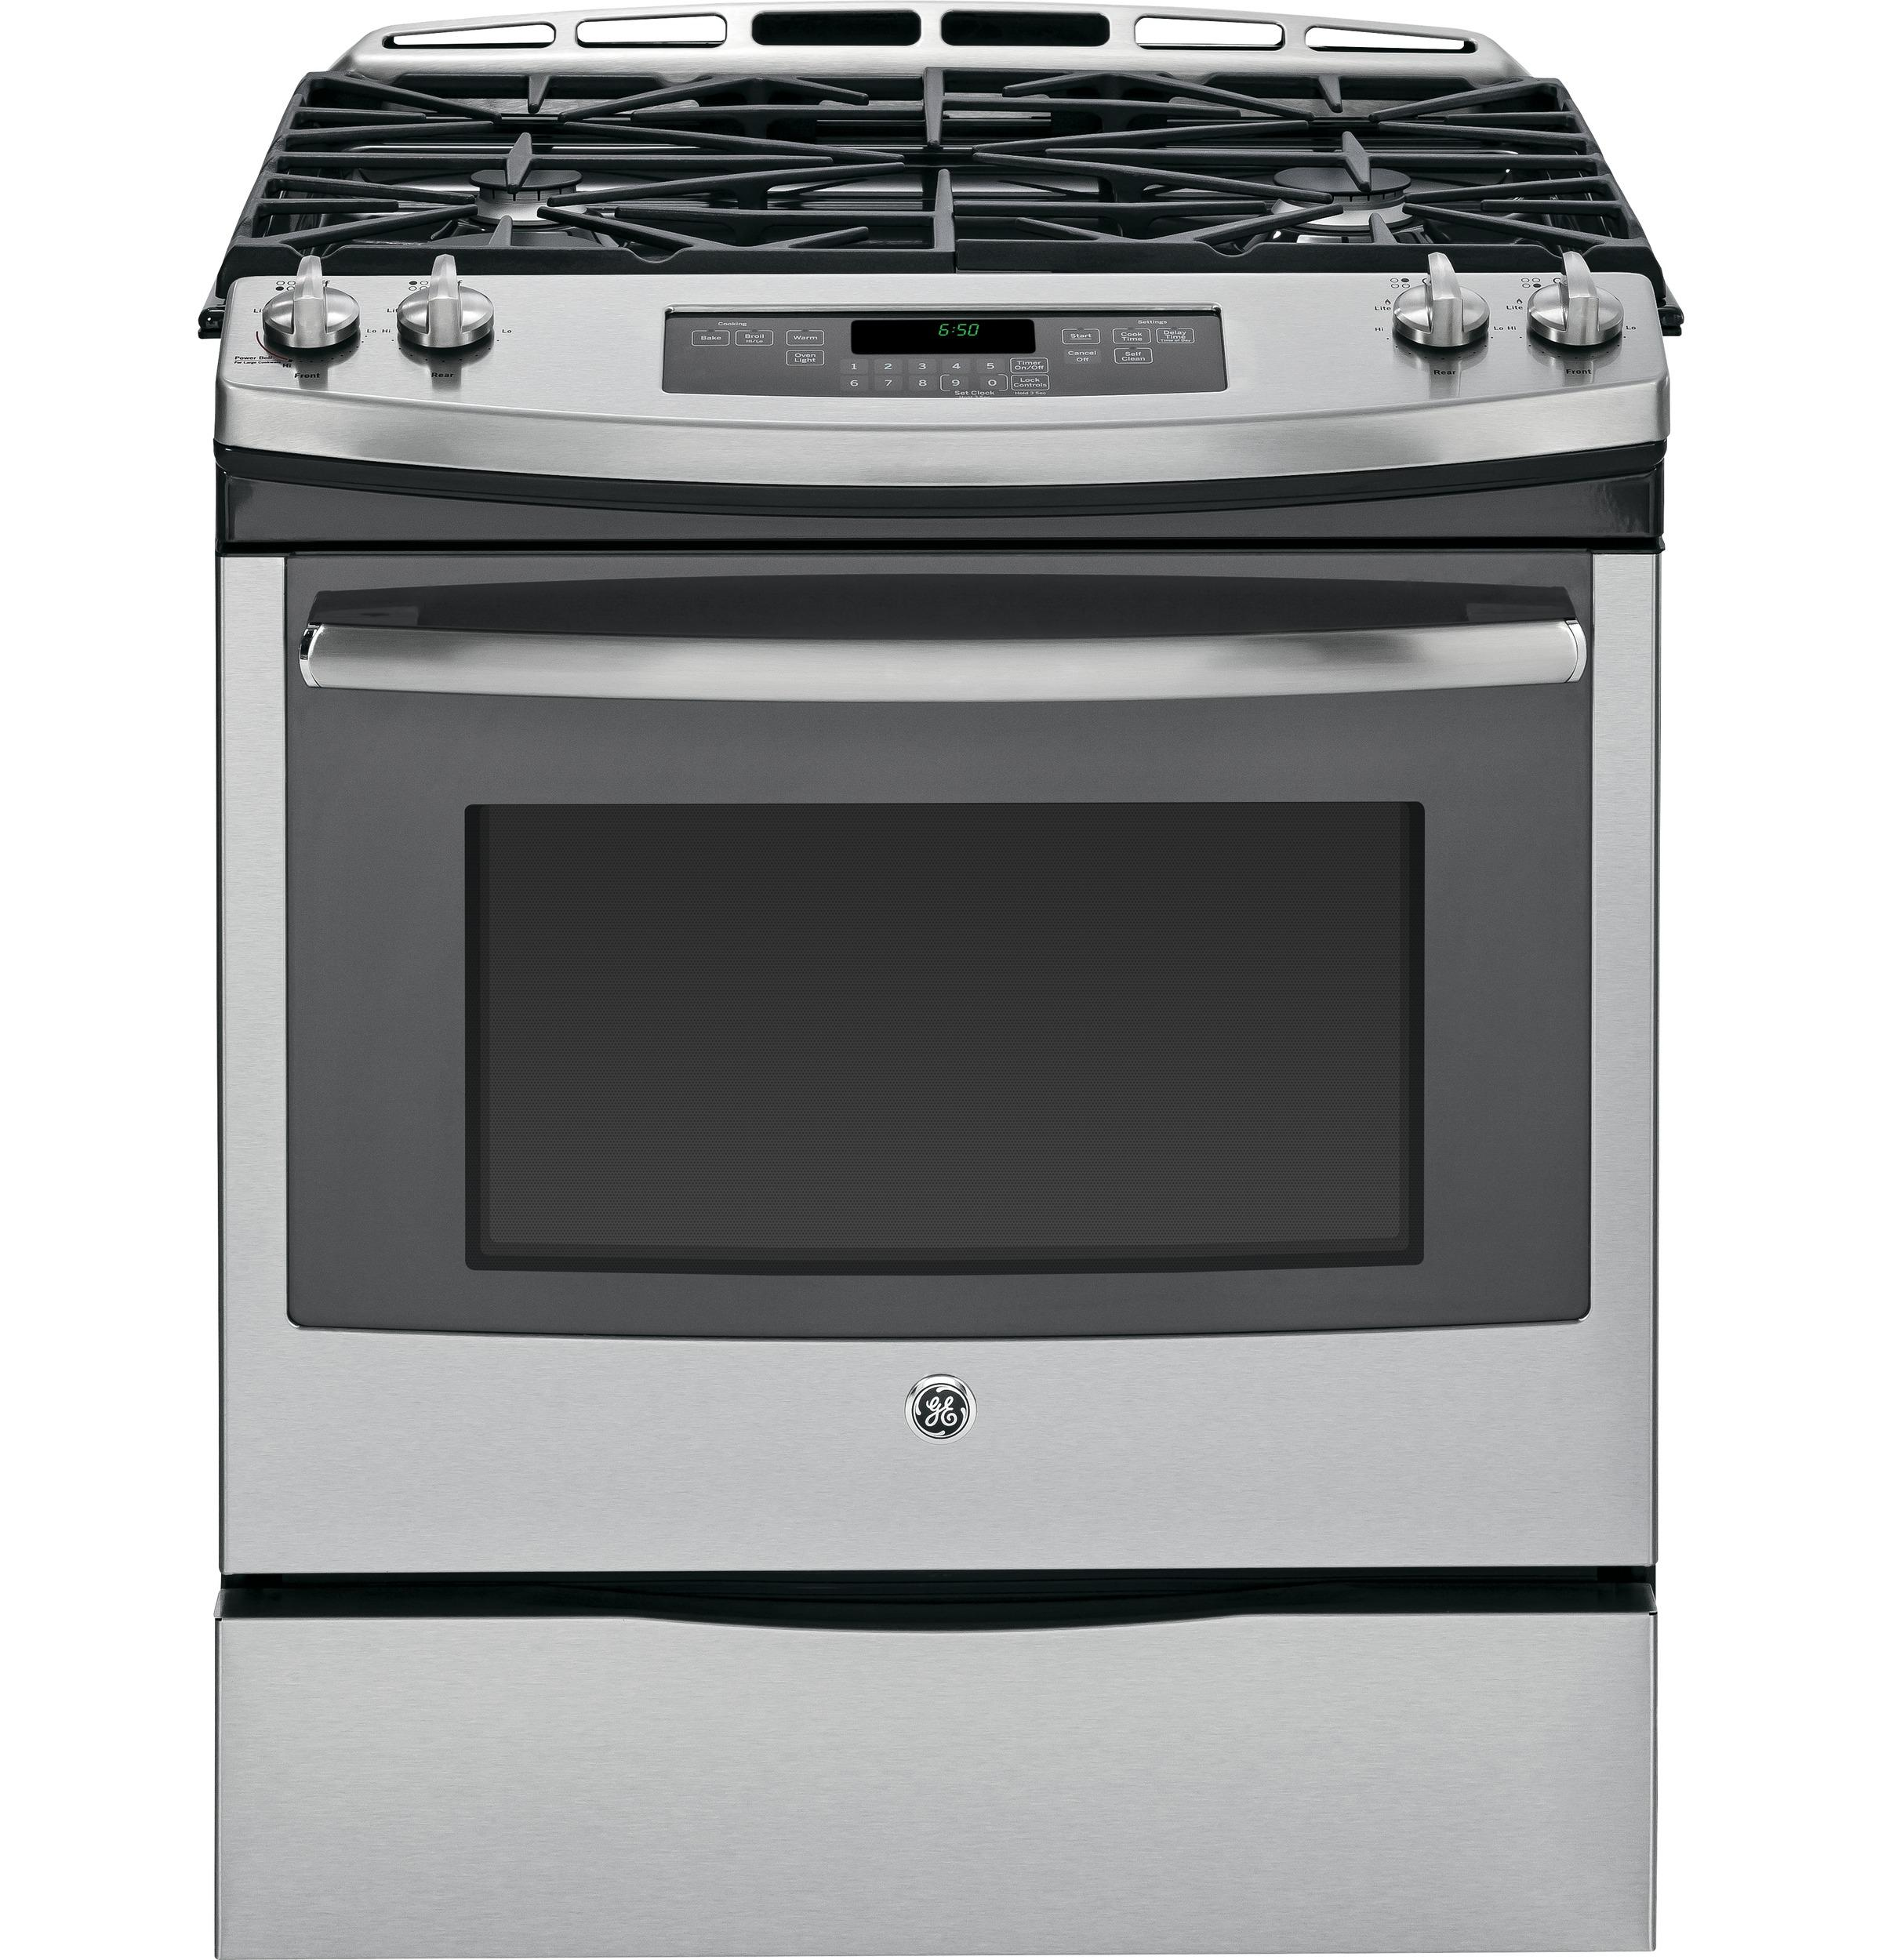 electric stove 2001 vw jetta radio wiring diagram gas ranges cooking warehouse discount center